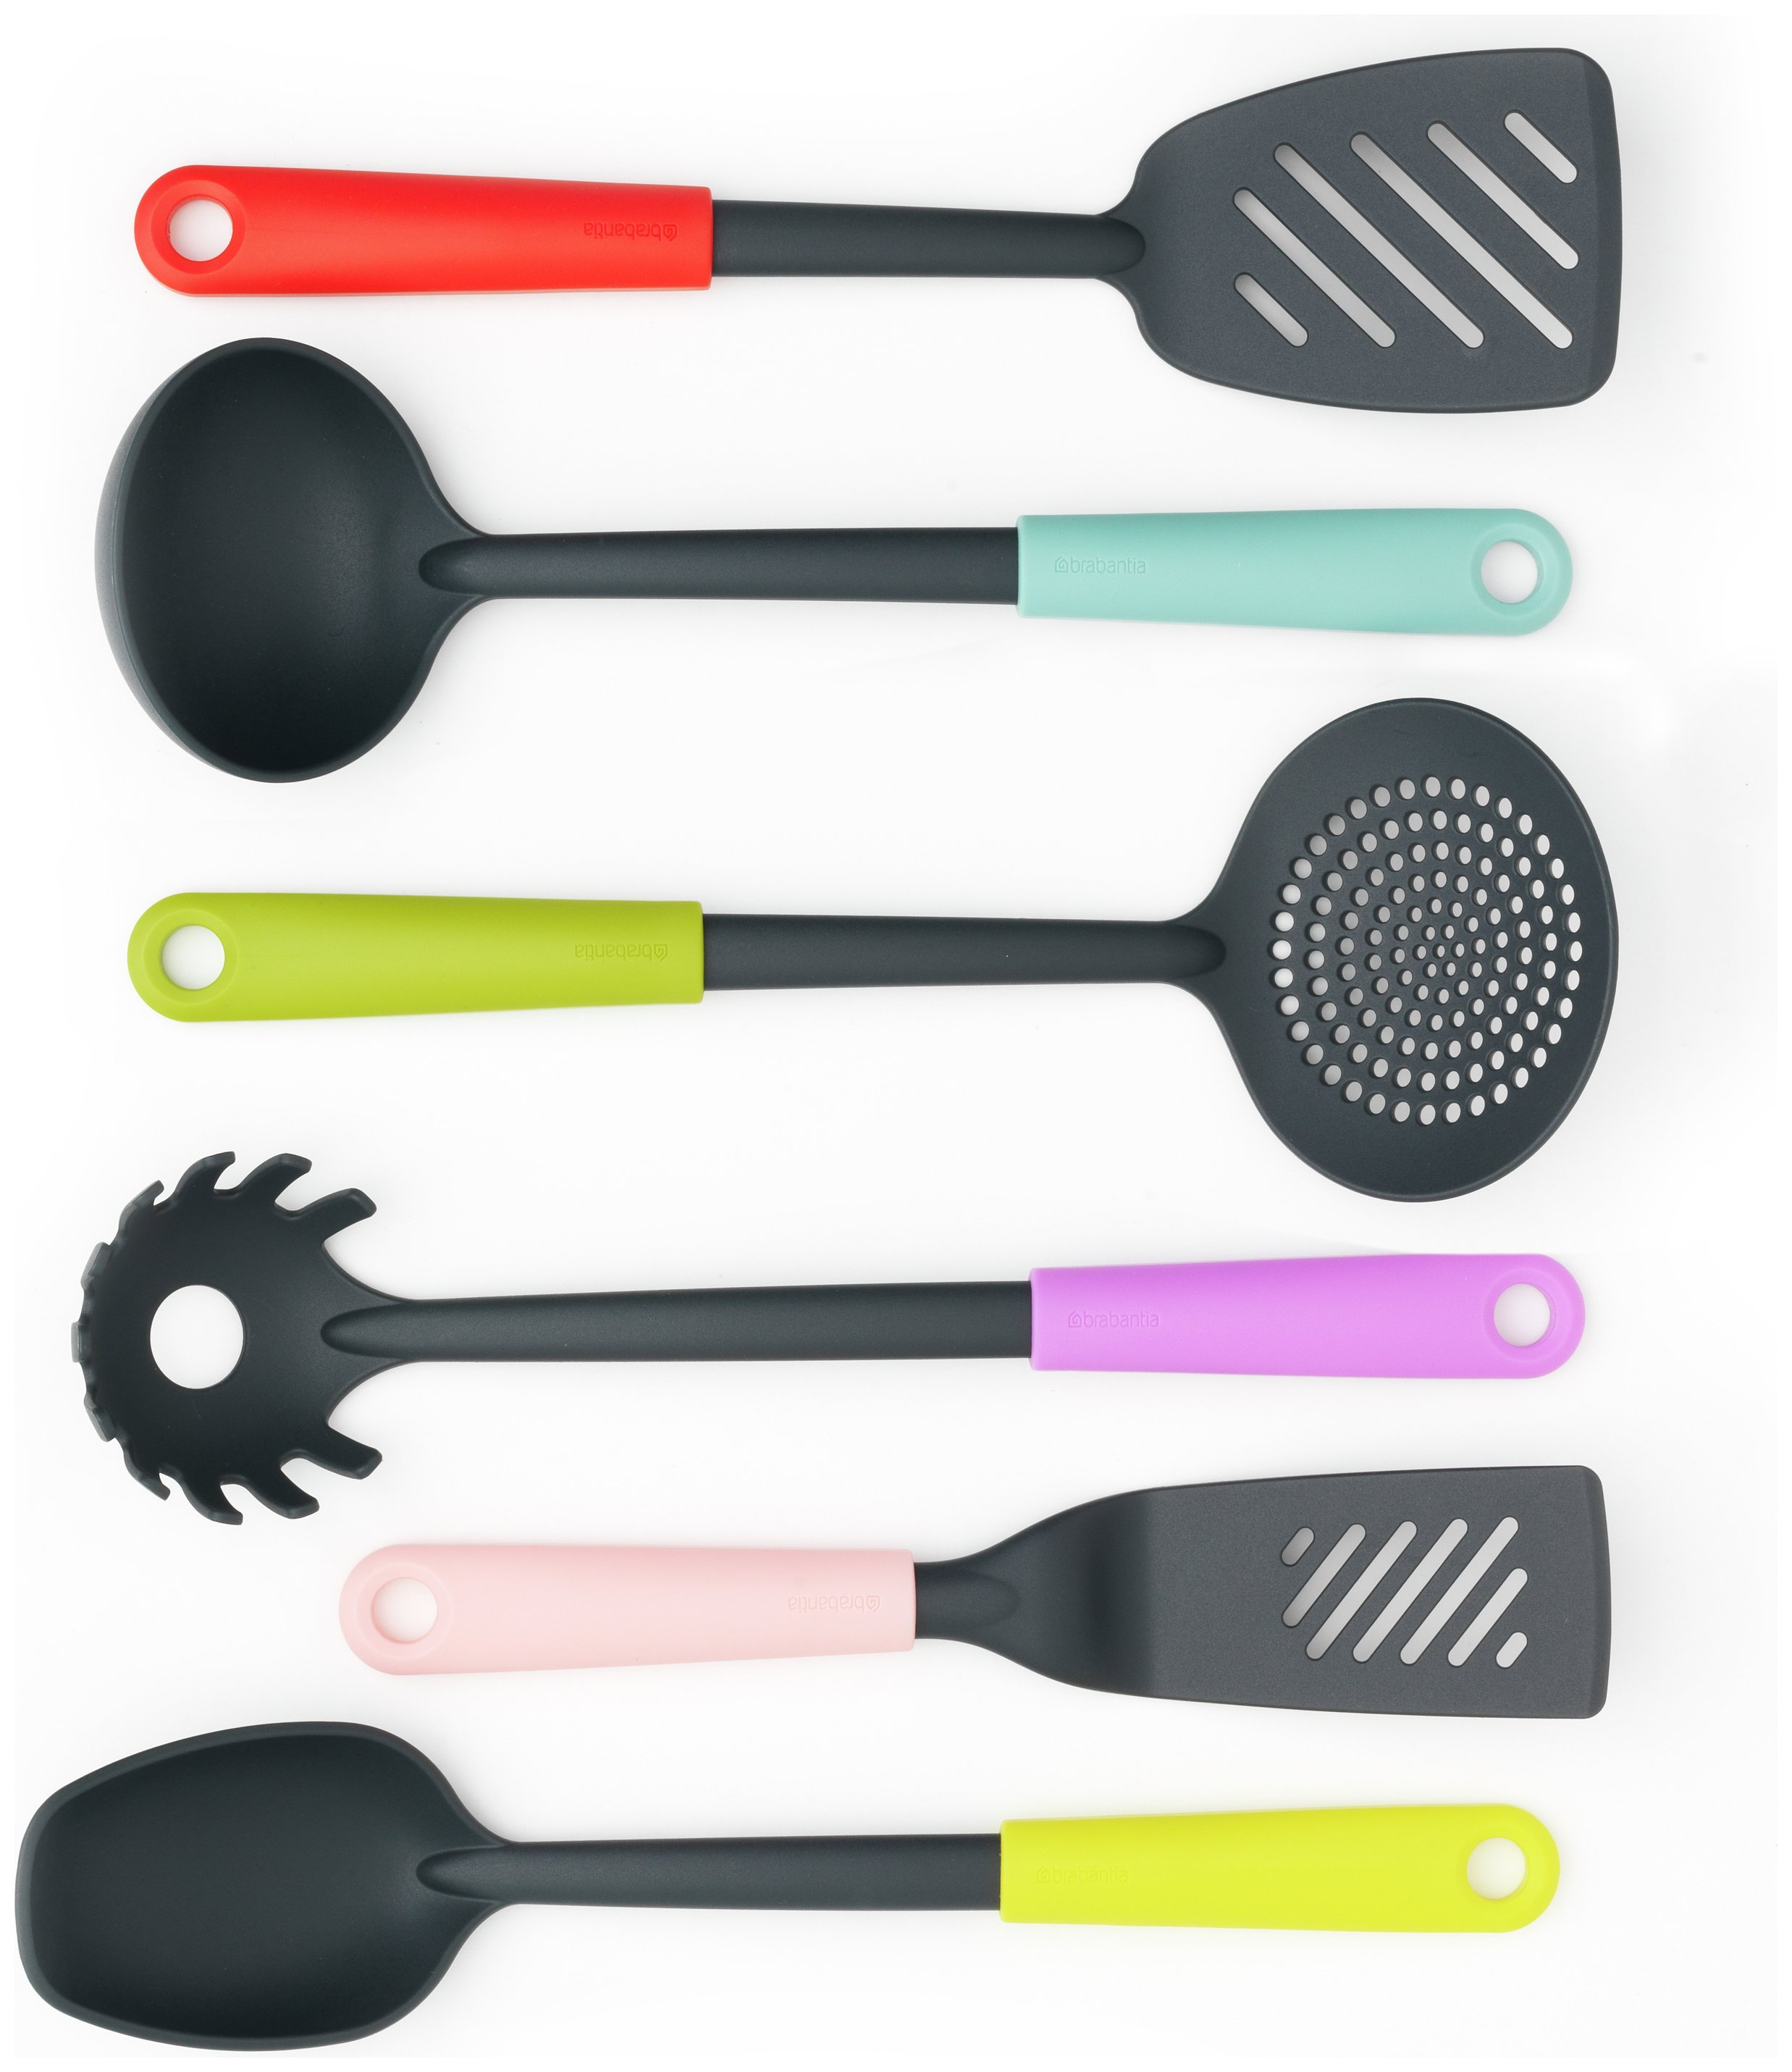 Image of Brabantia 6 Piece Kitchen Utensils Set - Multicoloured